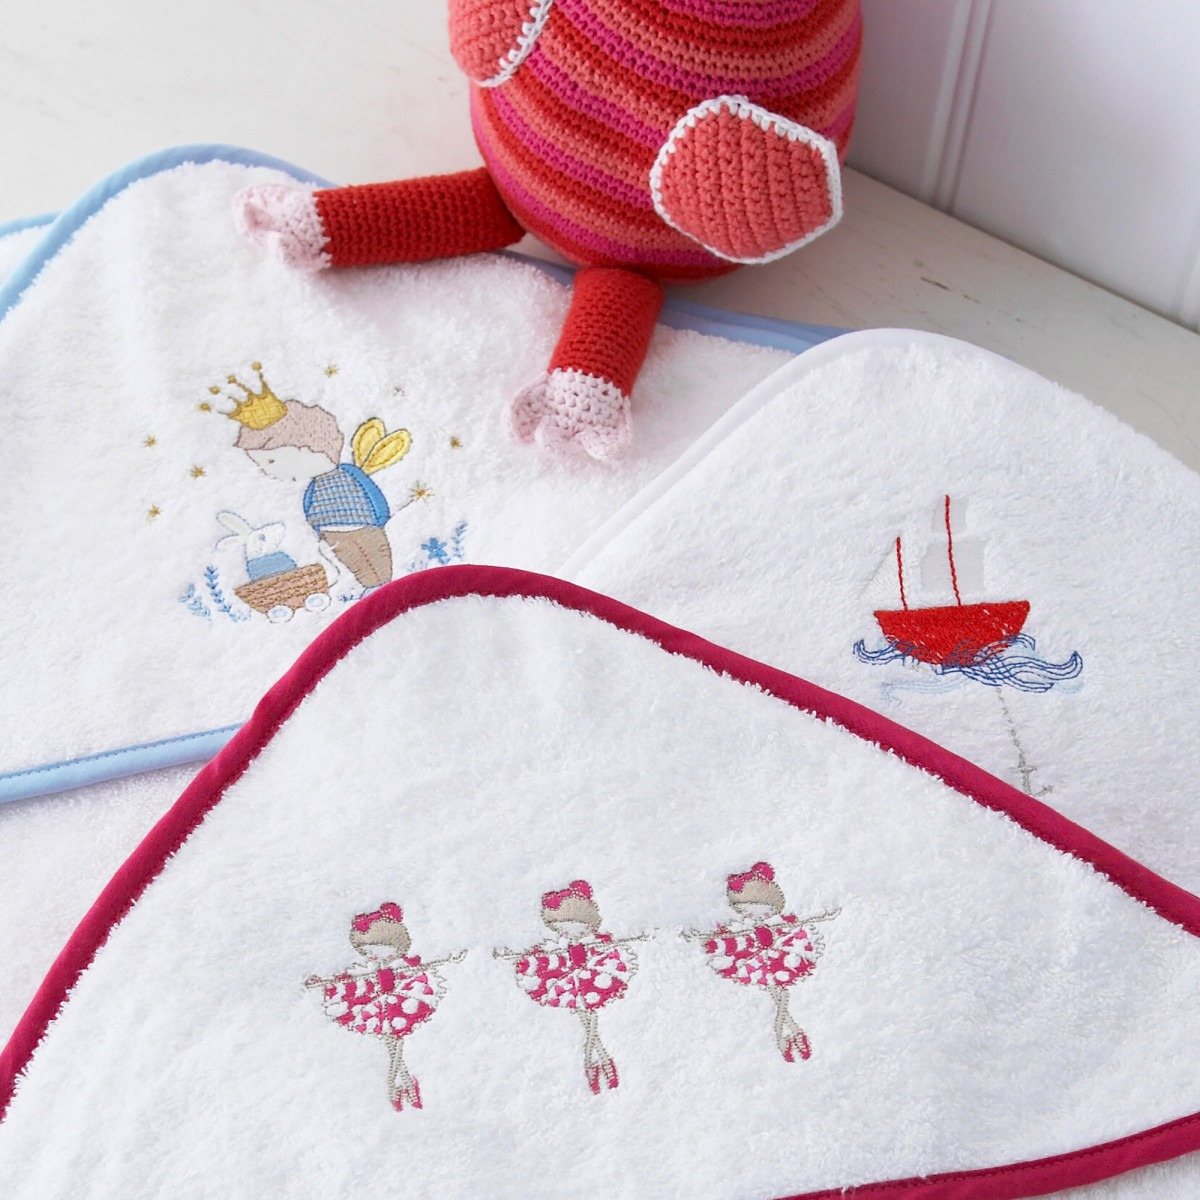 Embroidered Hooded Towels